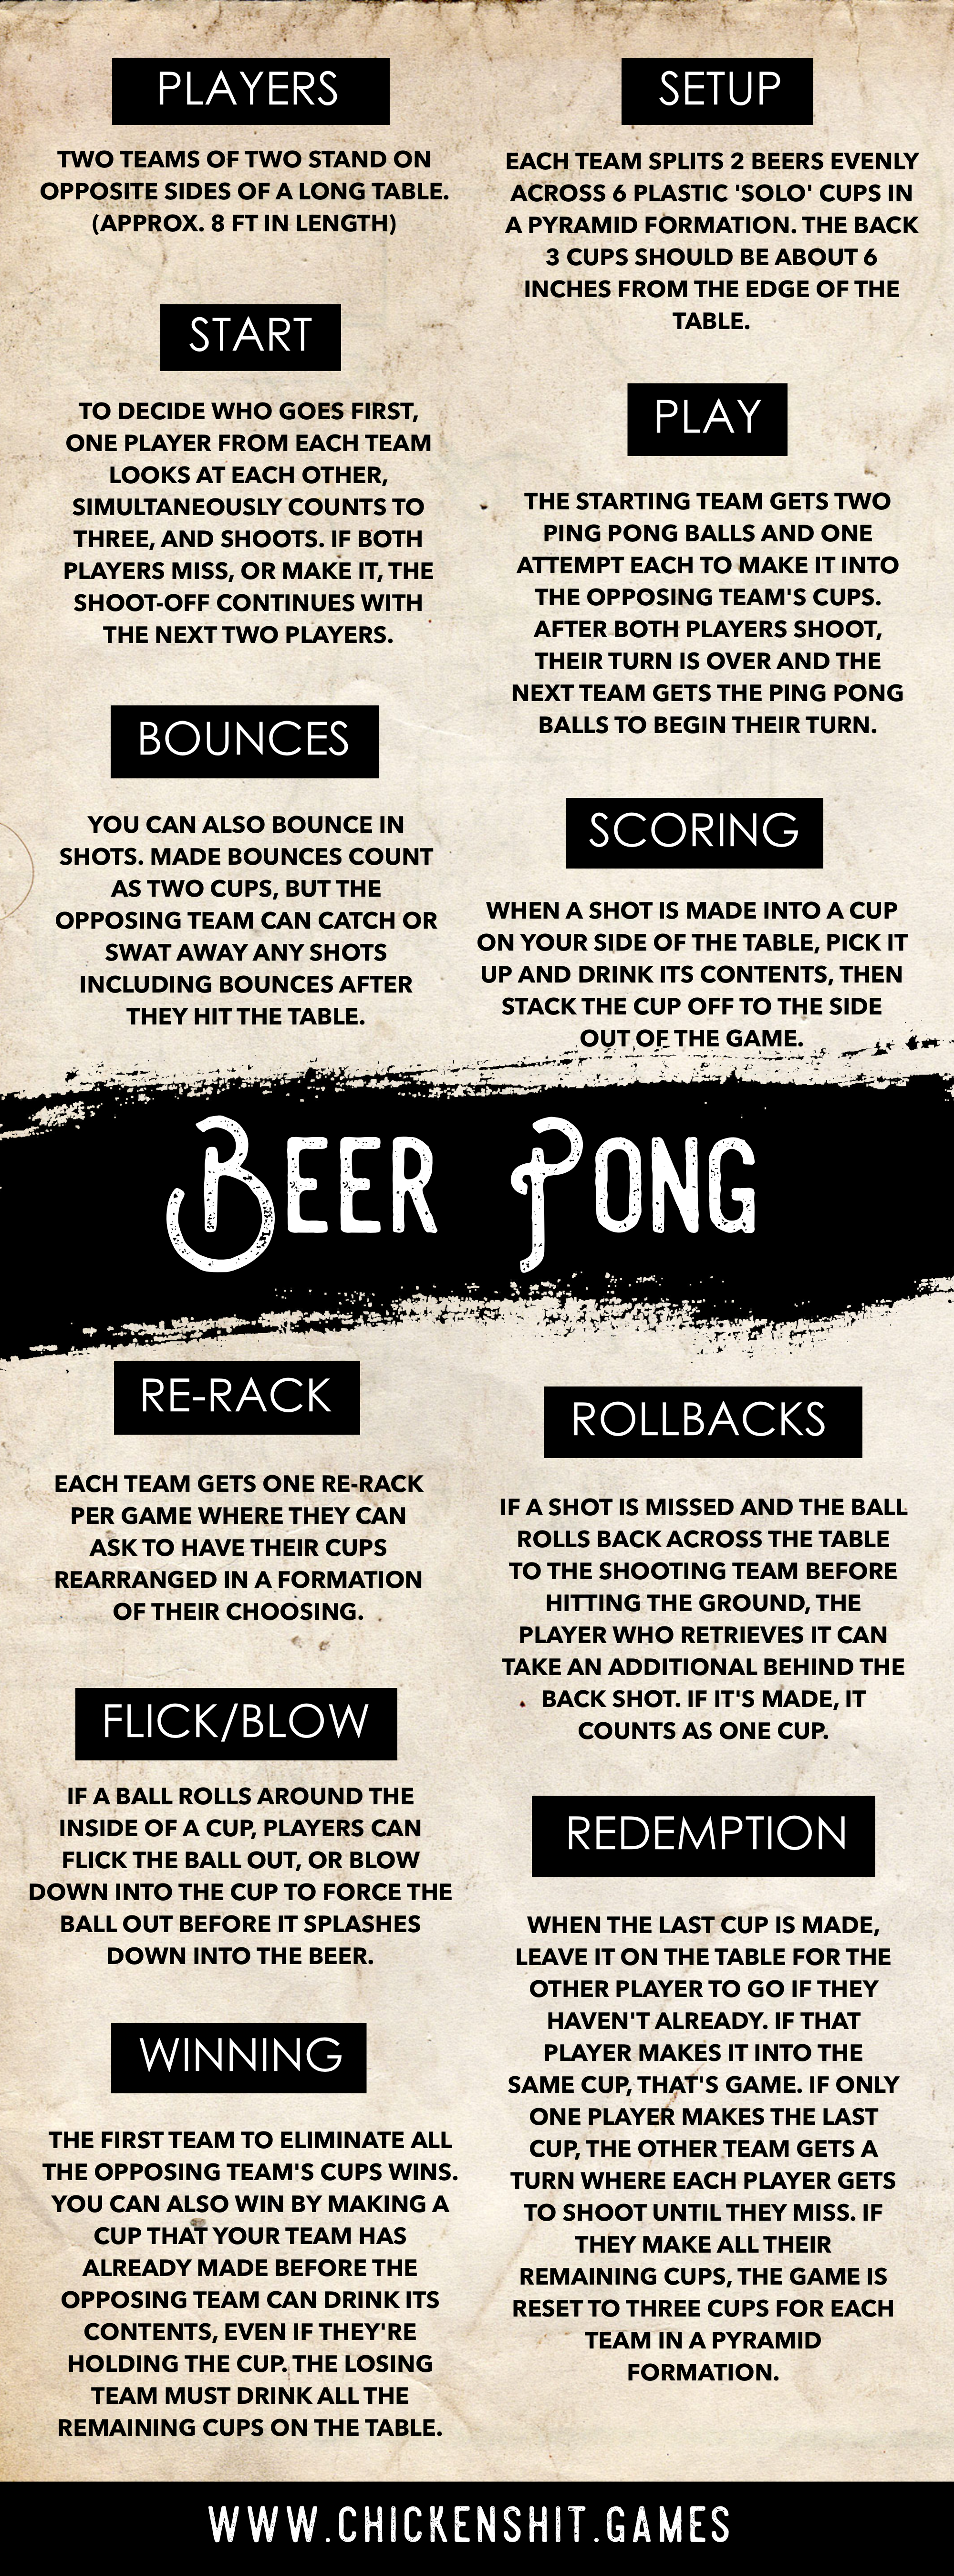 Beer Pong Rules 2020 Chickenshit The Card Game You Play With Strangers